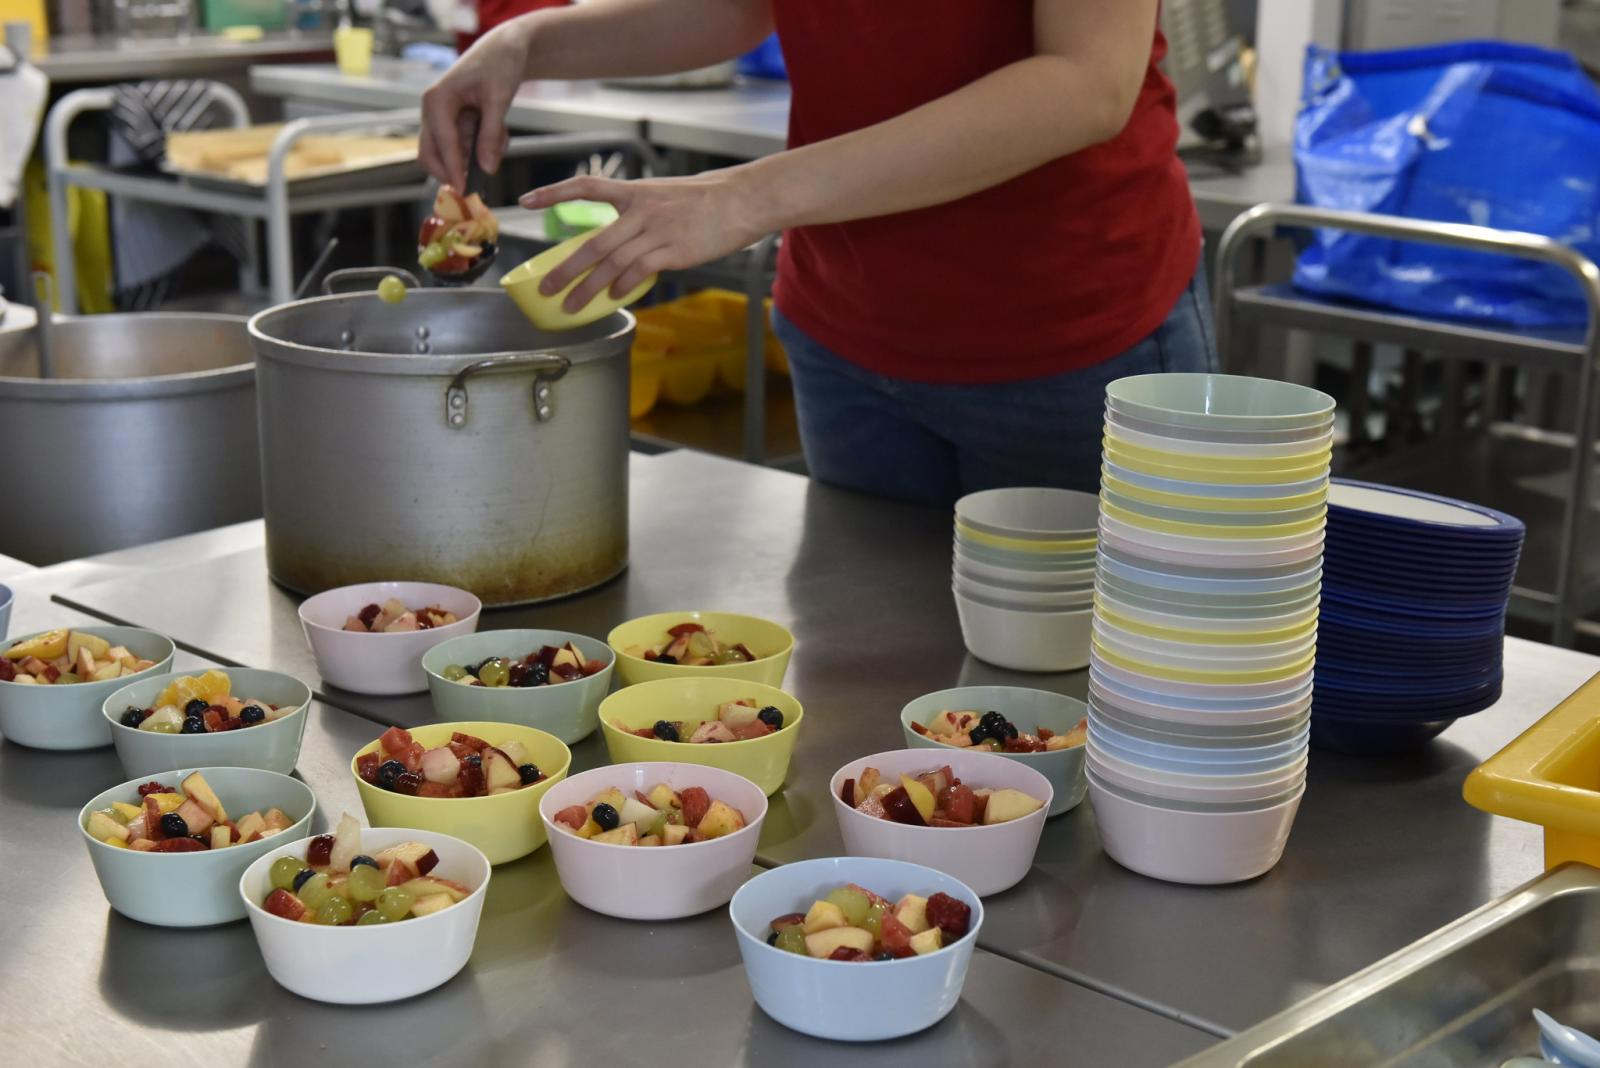 Catholic projects serve over 95,000 meals, as faith leaders call for strategy to tackle poverty - Diocese of Westminster